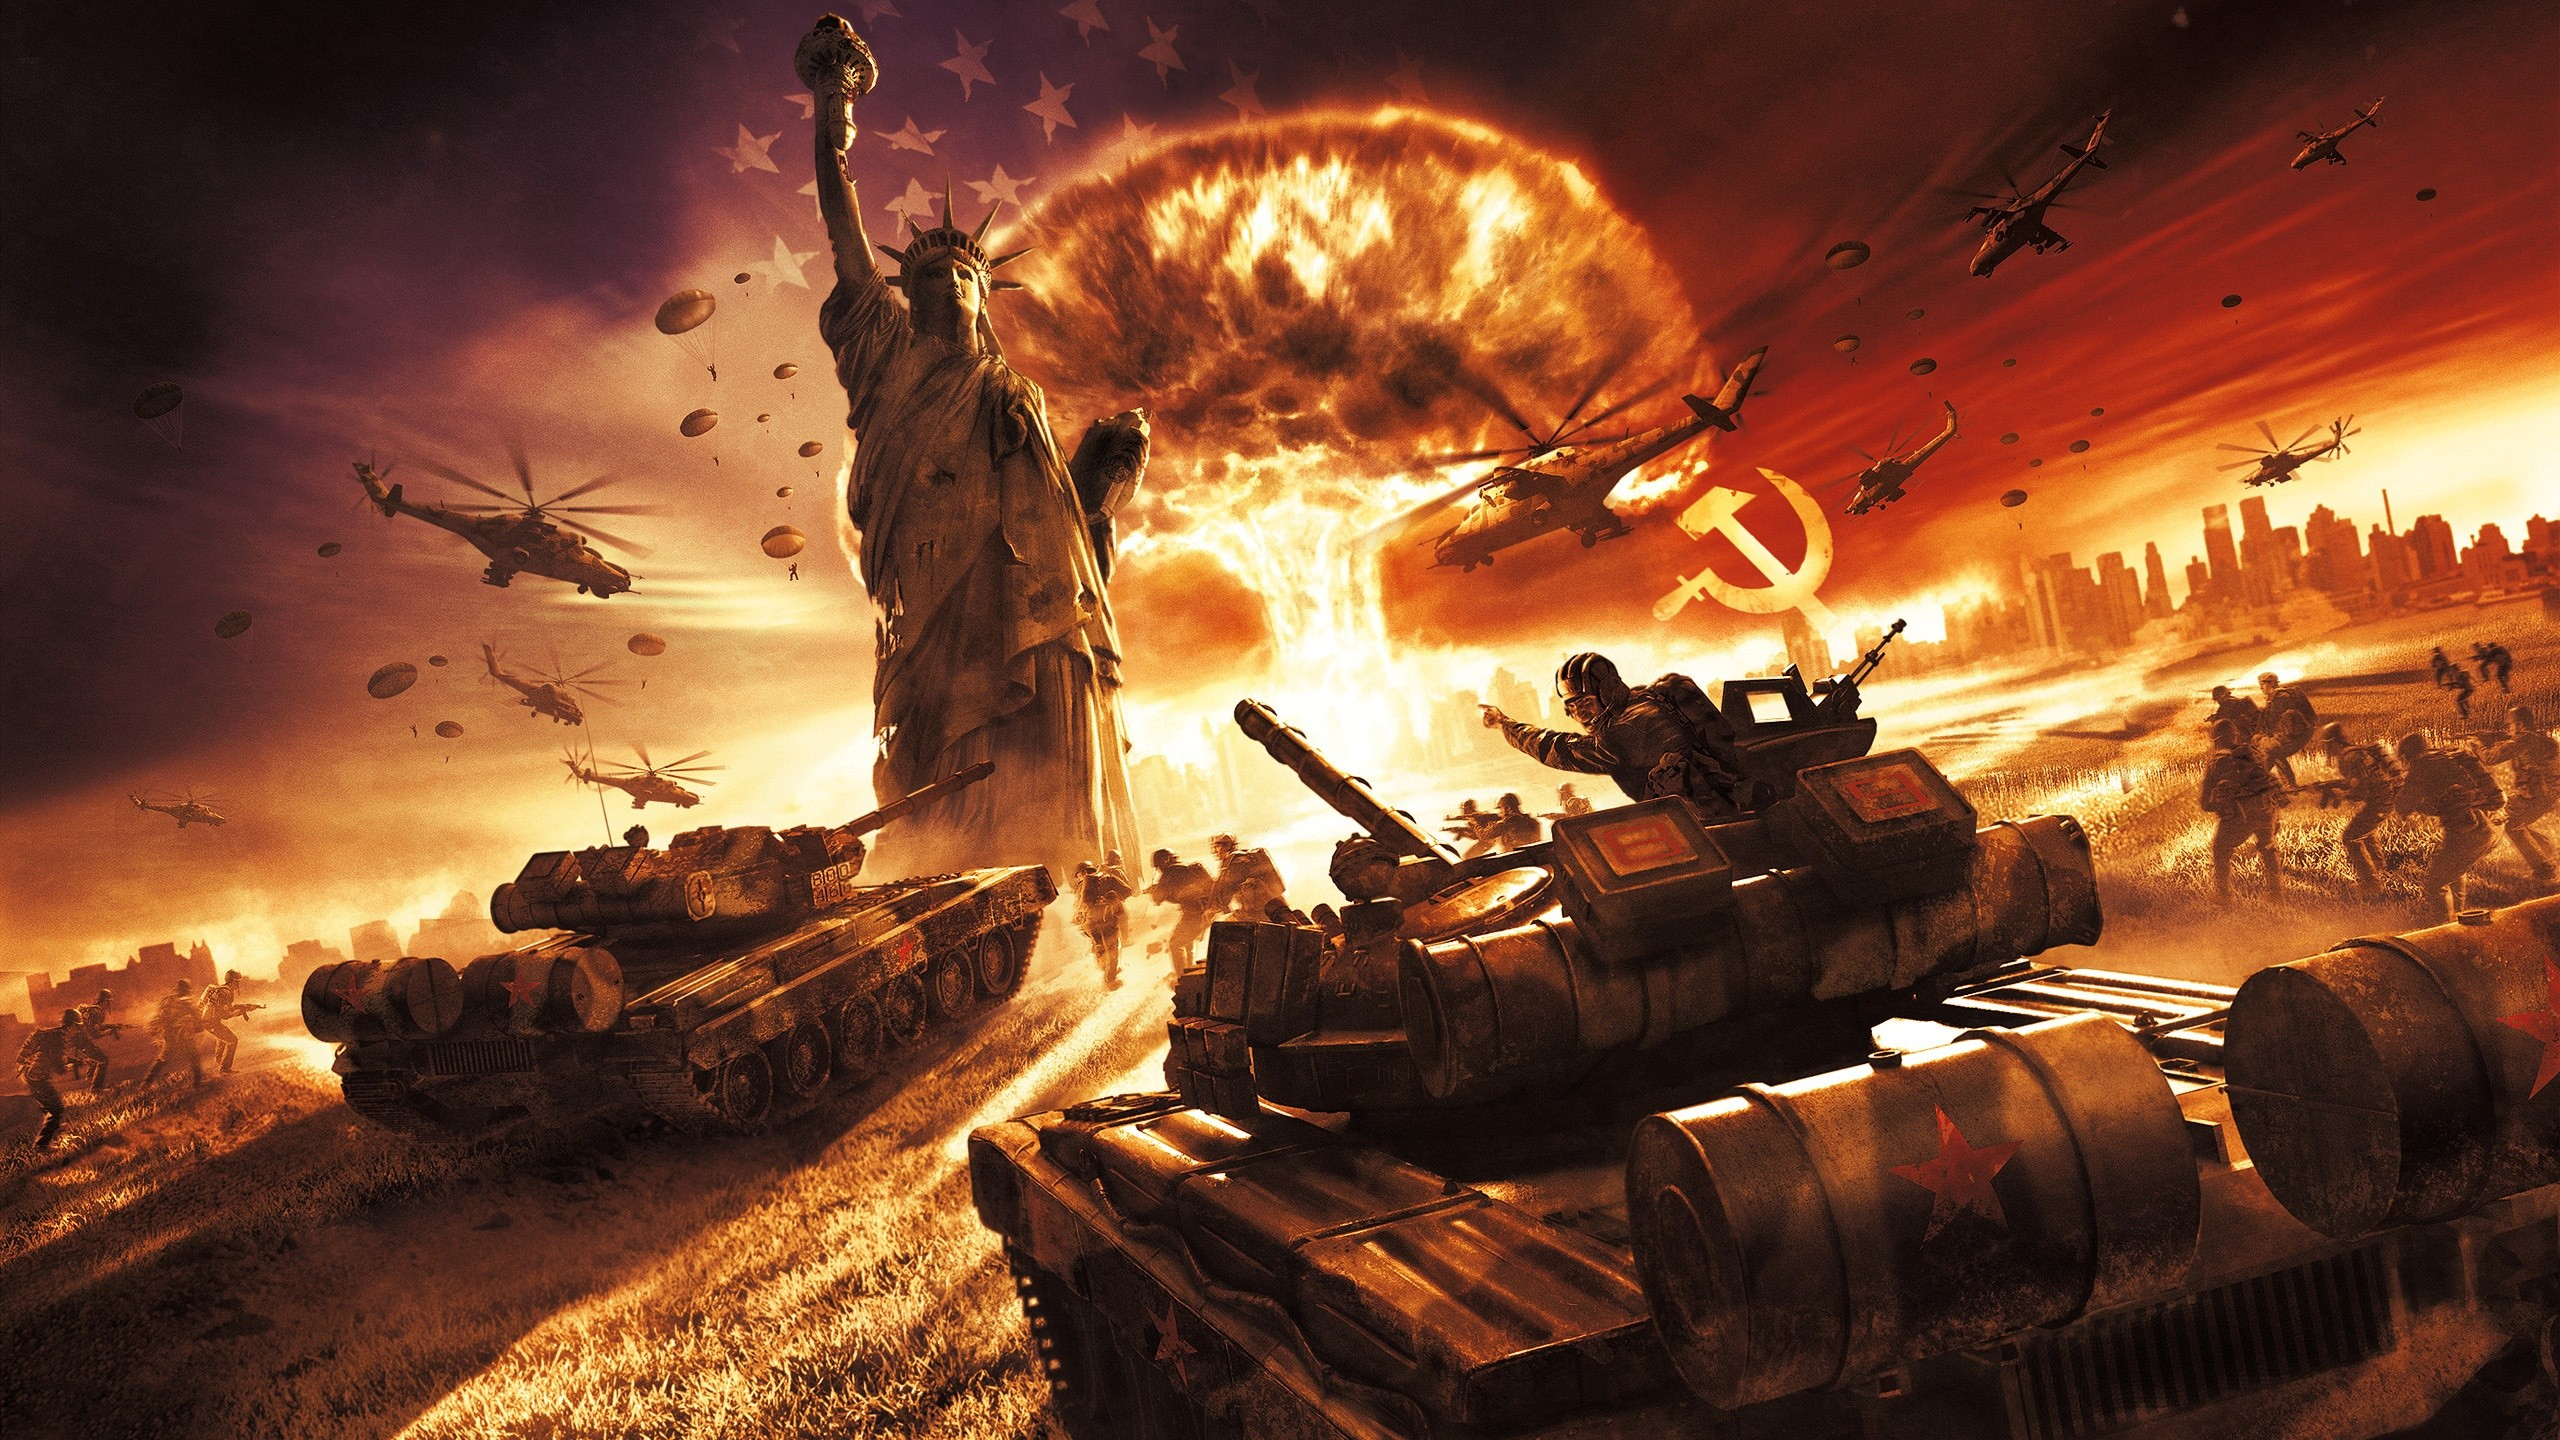 2560x1440 Syria, World War Iii, United States, Nuclear Warfare, Second World War  Wallpaper